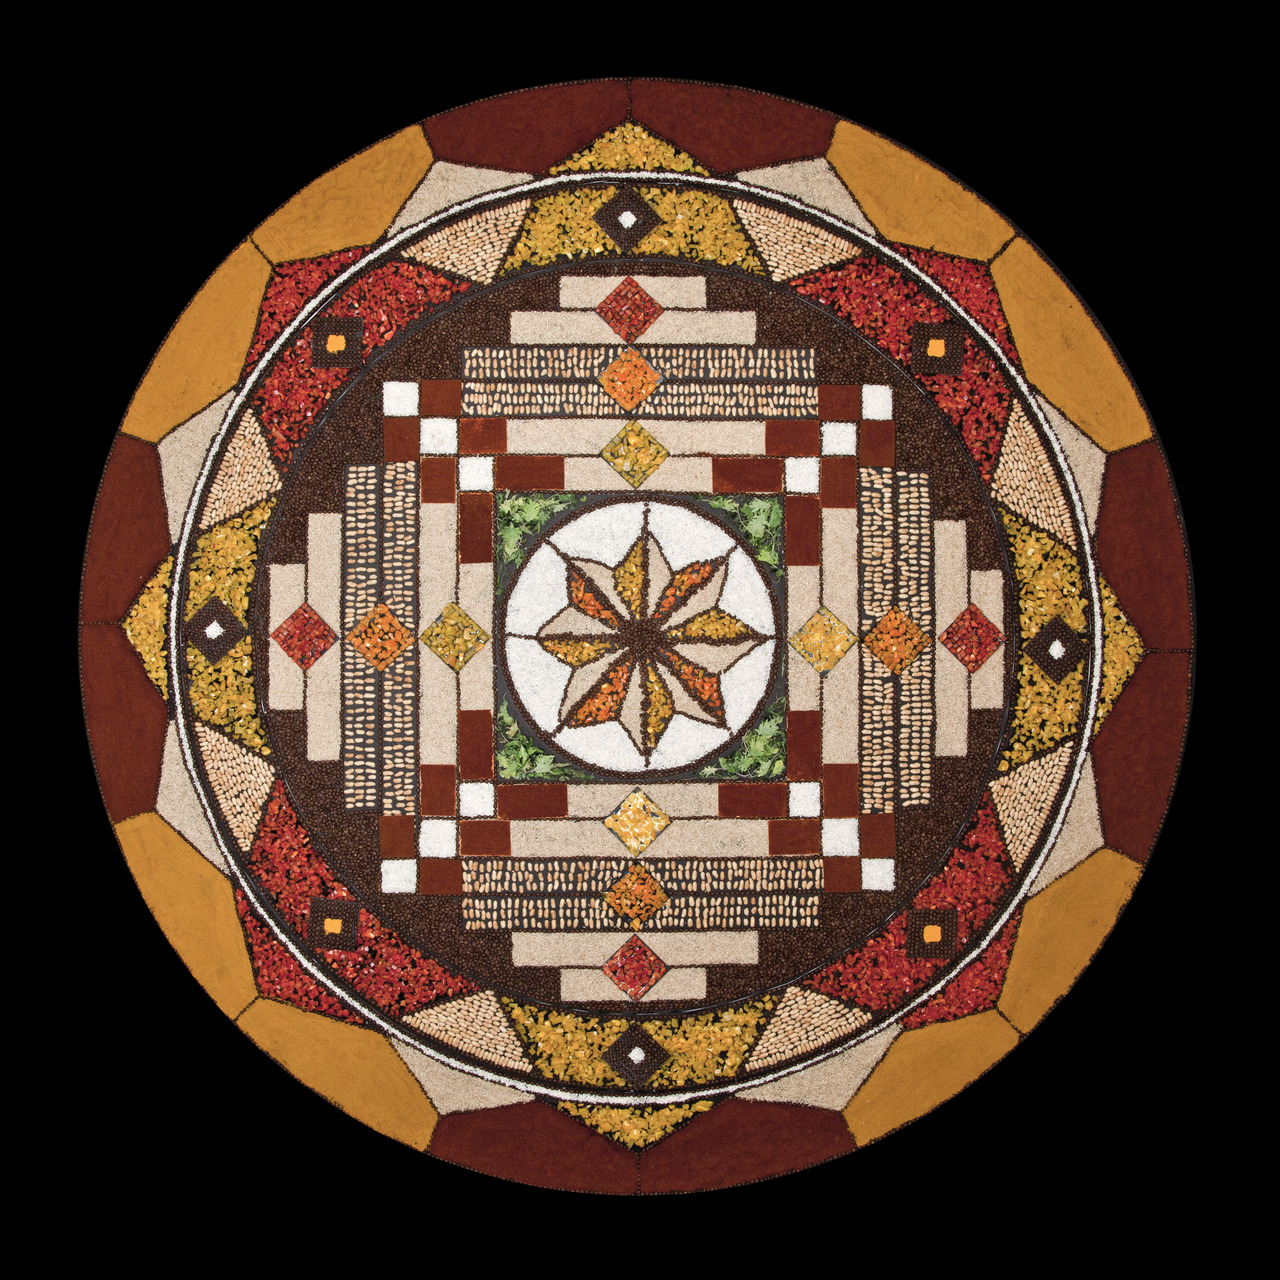 """""""What Wonder is this Universe!"""" Our new album is now available for download and vinyl pre-order. www.theSoilandtheSun.com"""